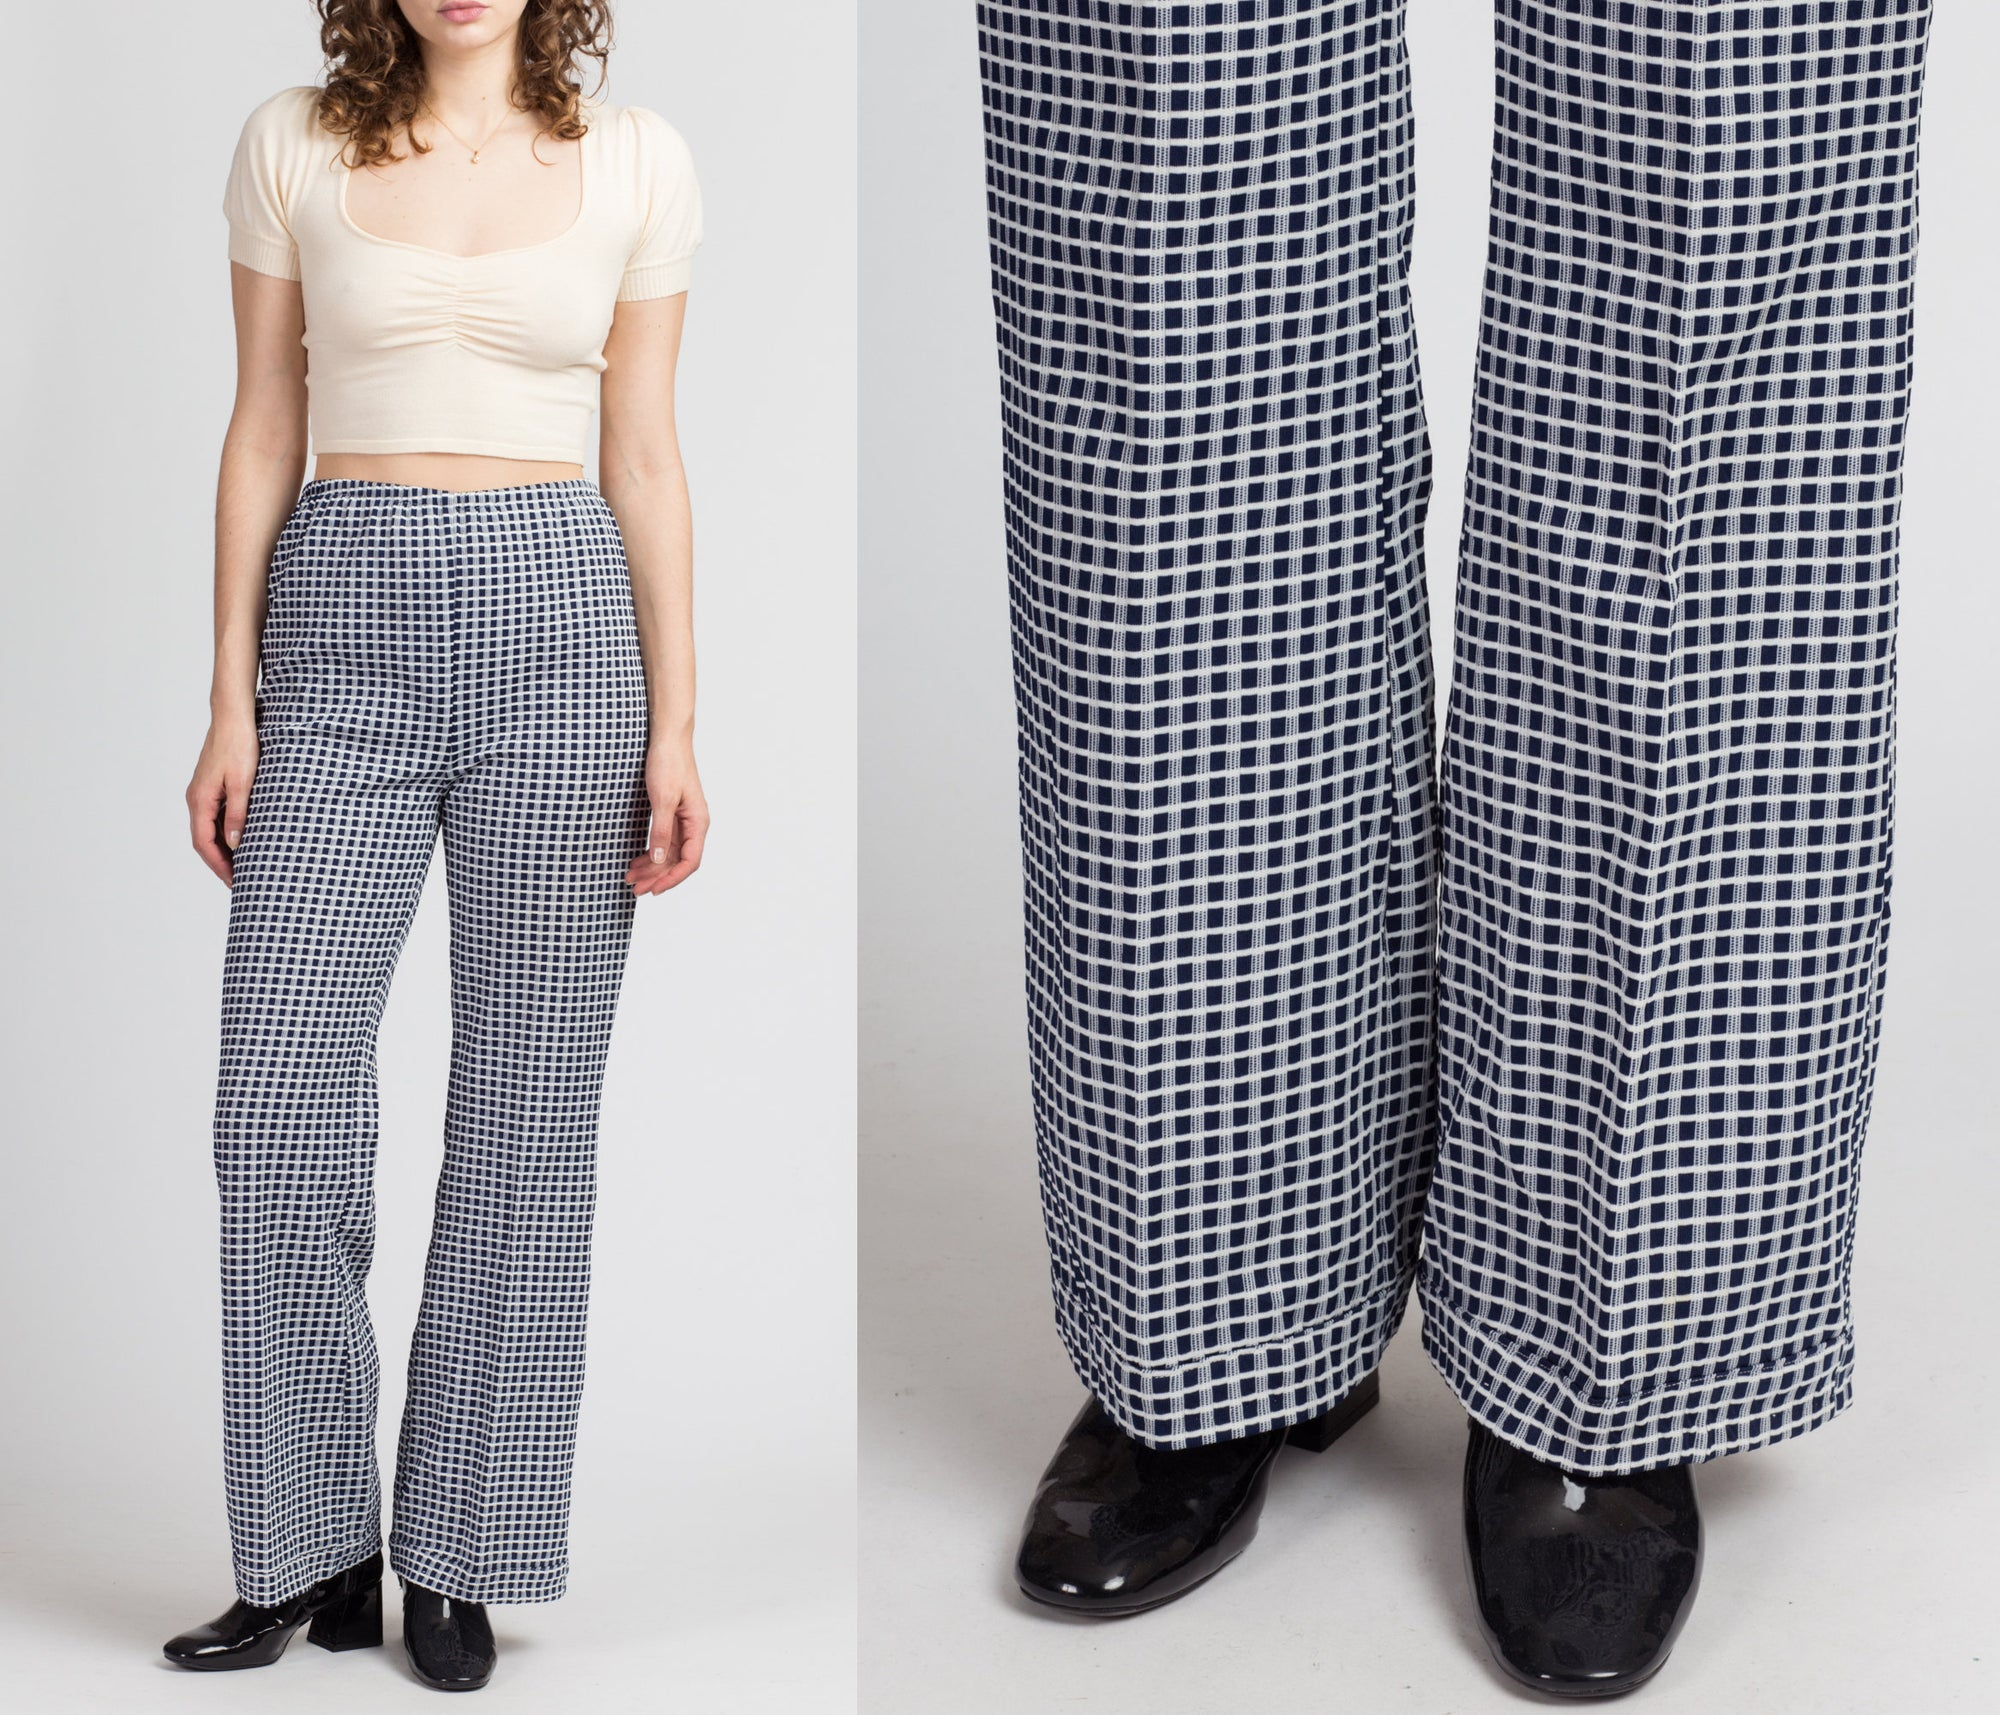 70s Blue & White Checkered Trousers - Medium to Large